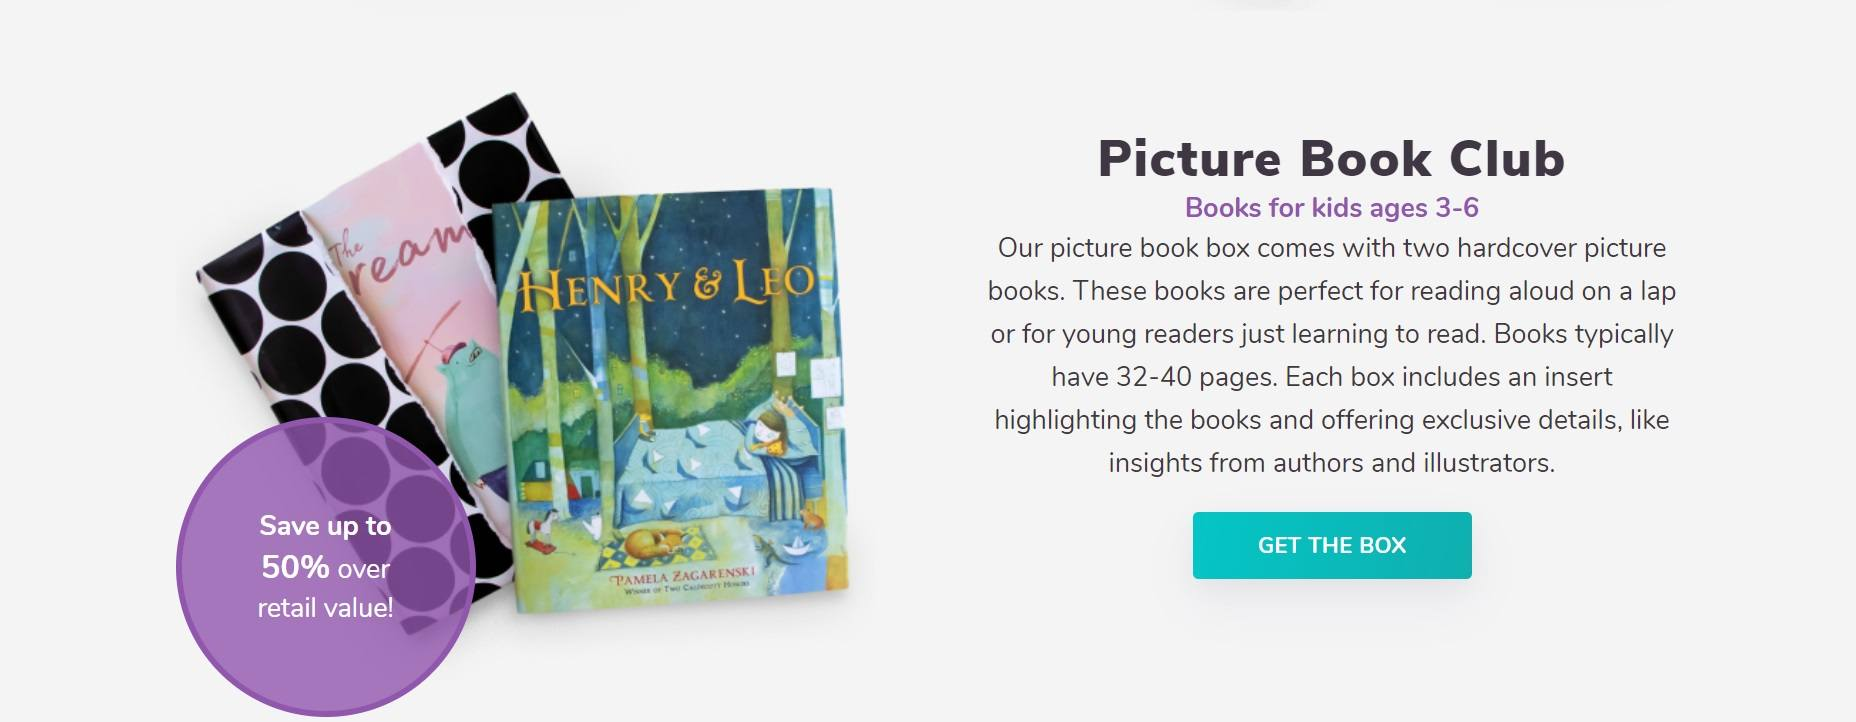 Bookroo Picture Book Club